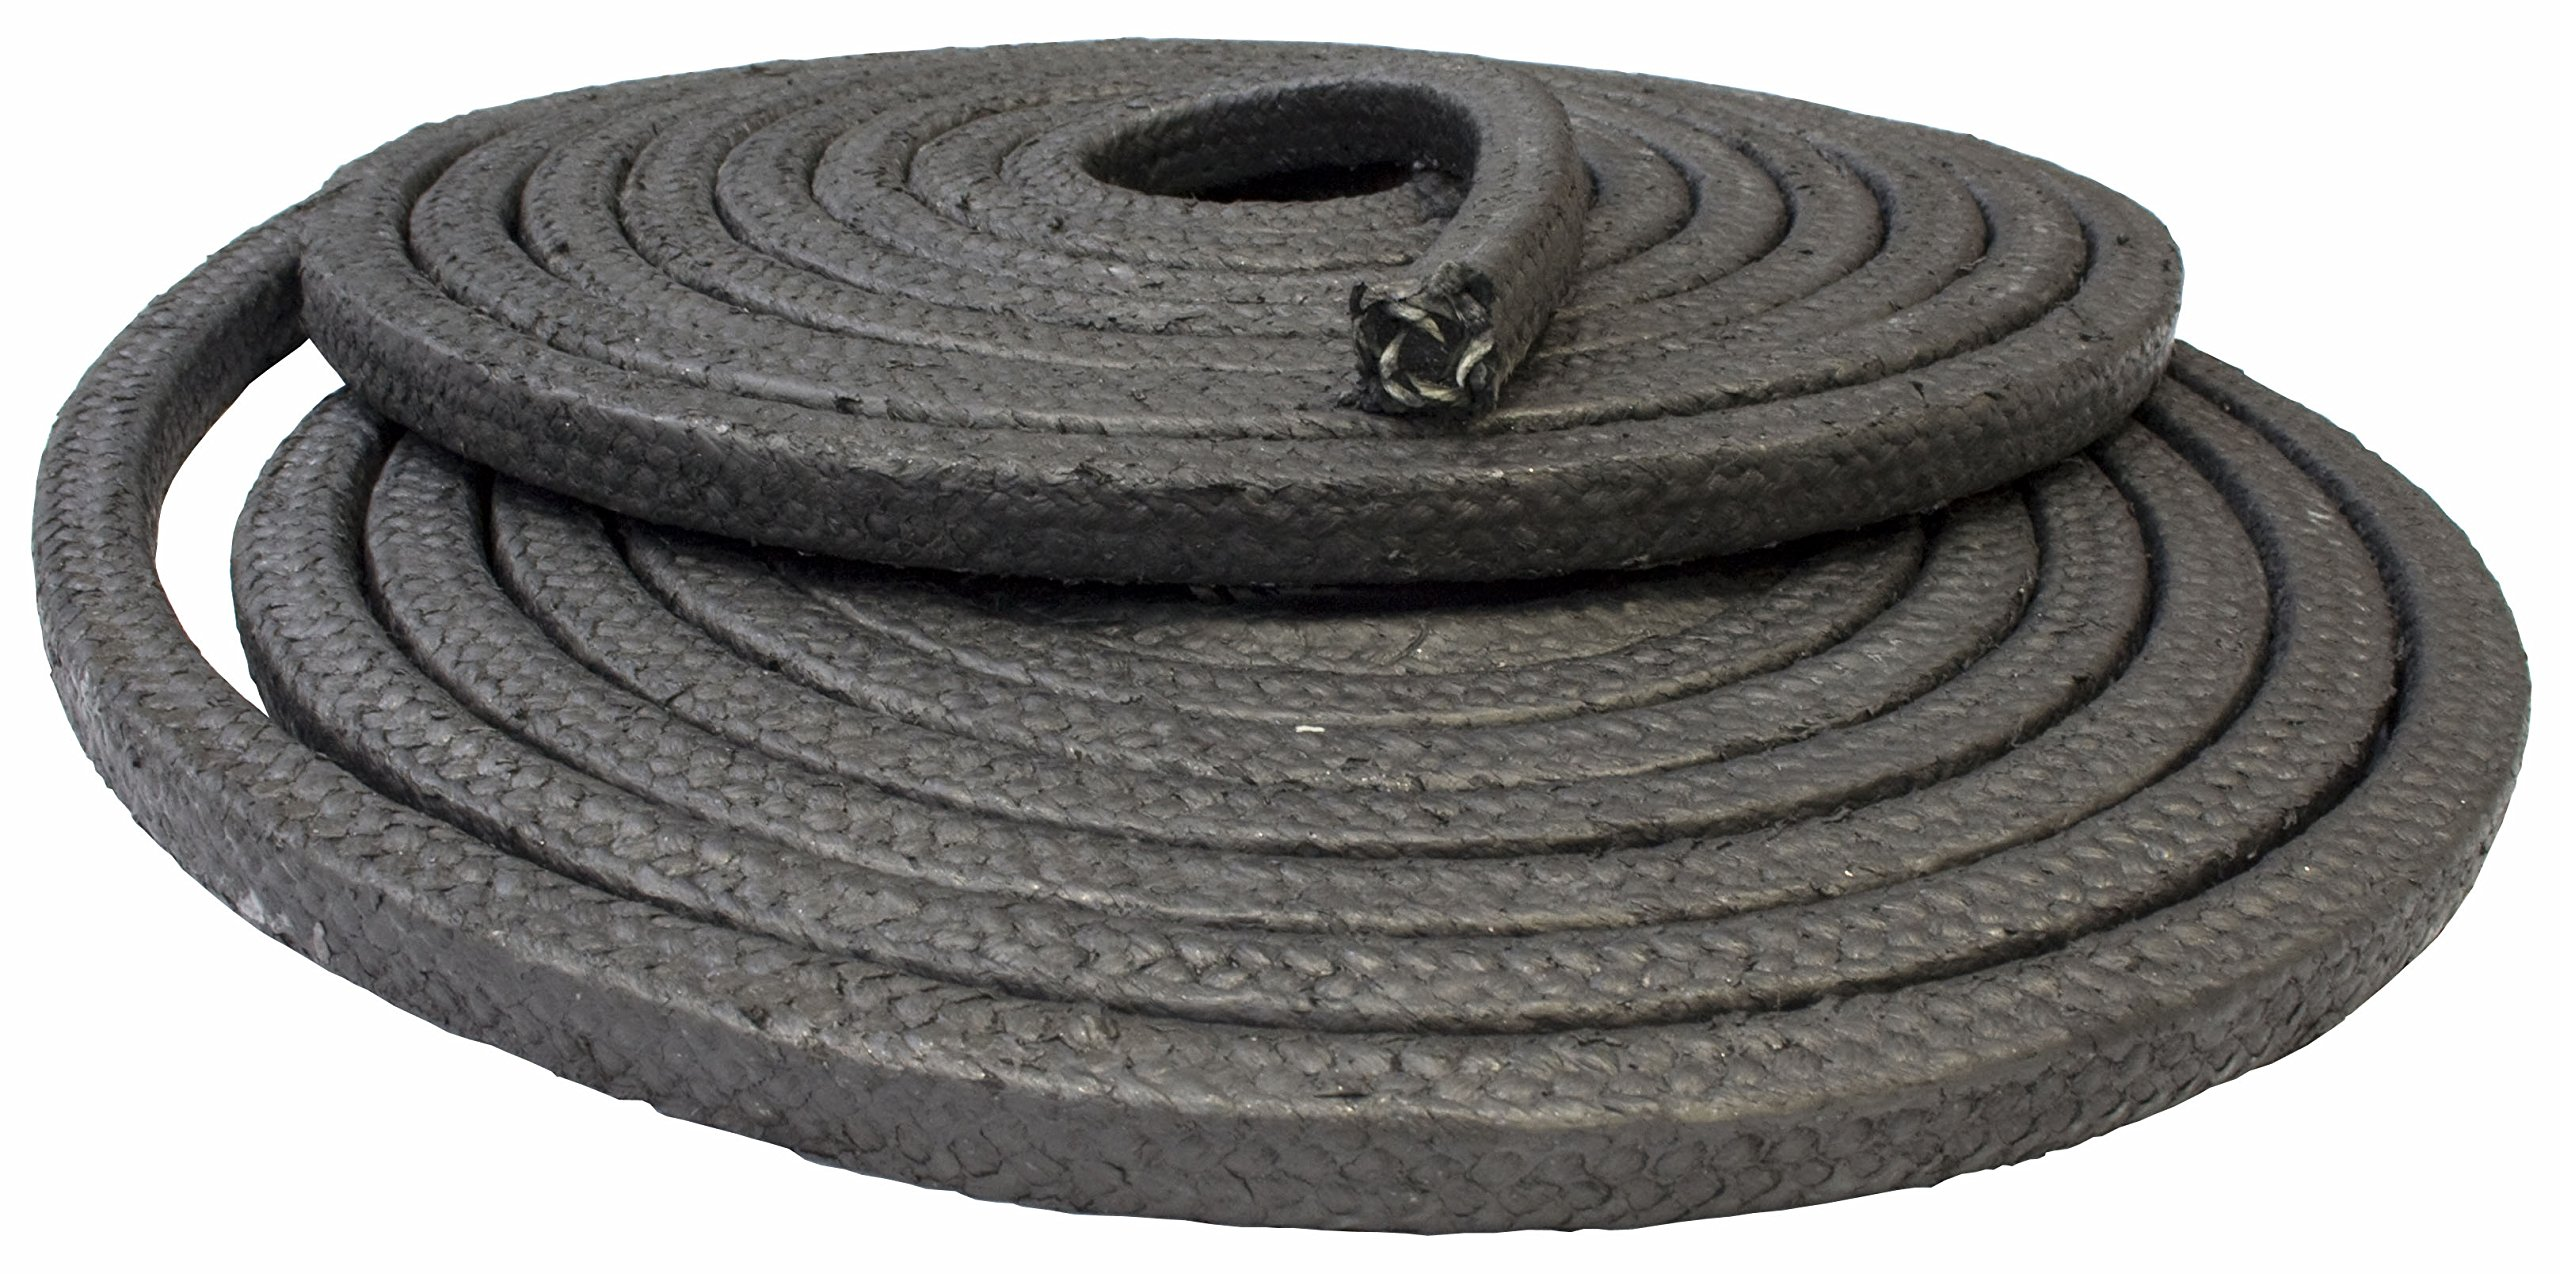 "Gland packing rope 3mm (1/8"") square - glass fibre & graphite braided - sold per metre"